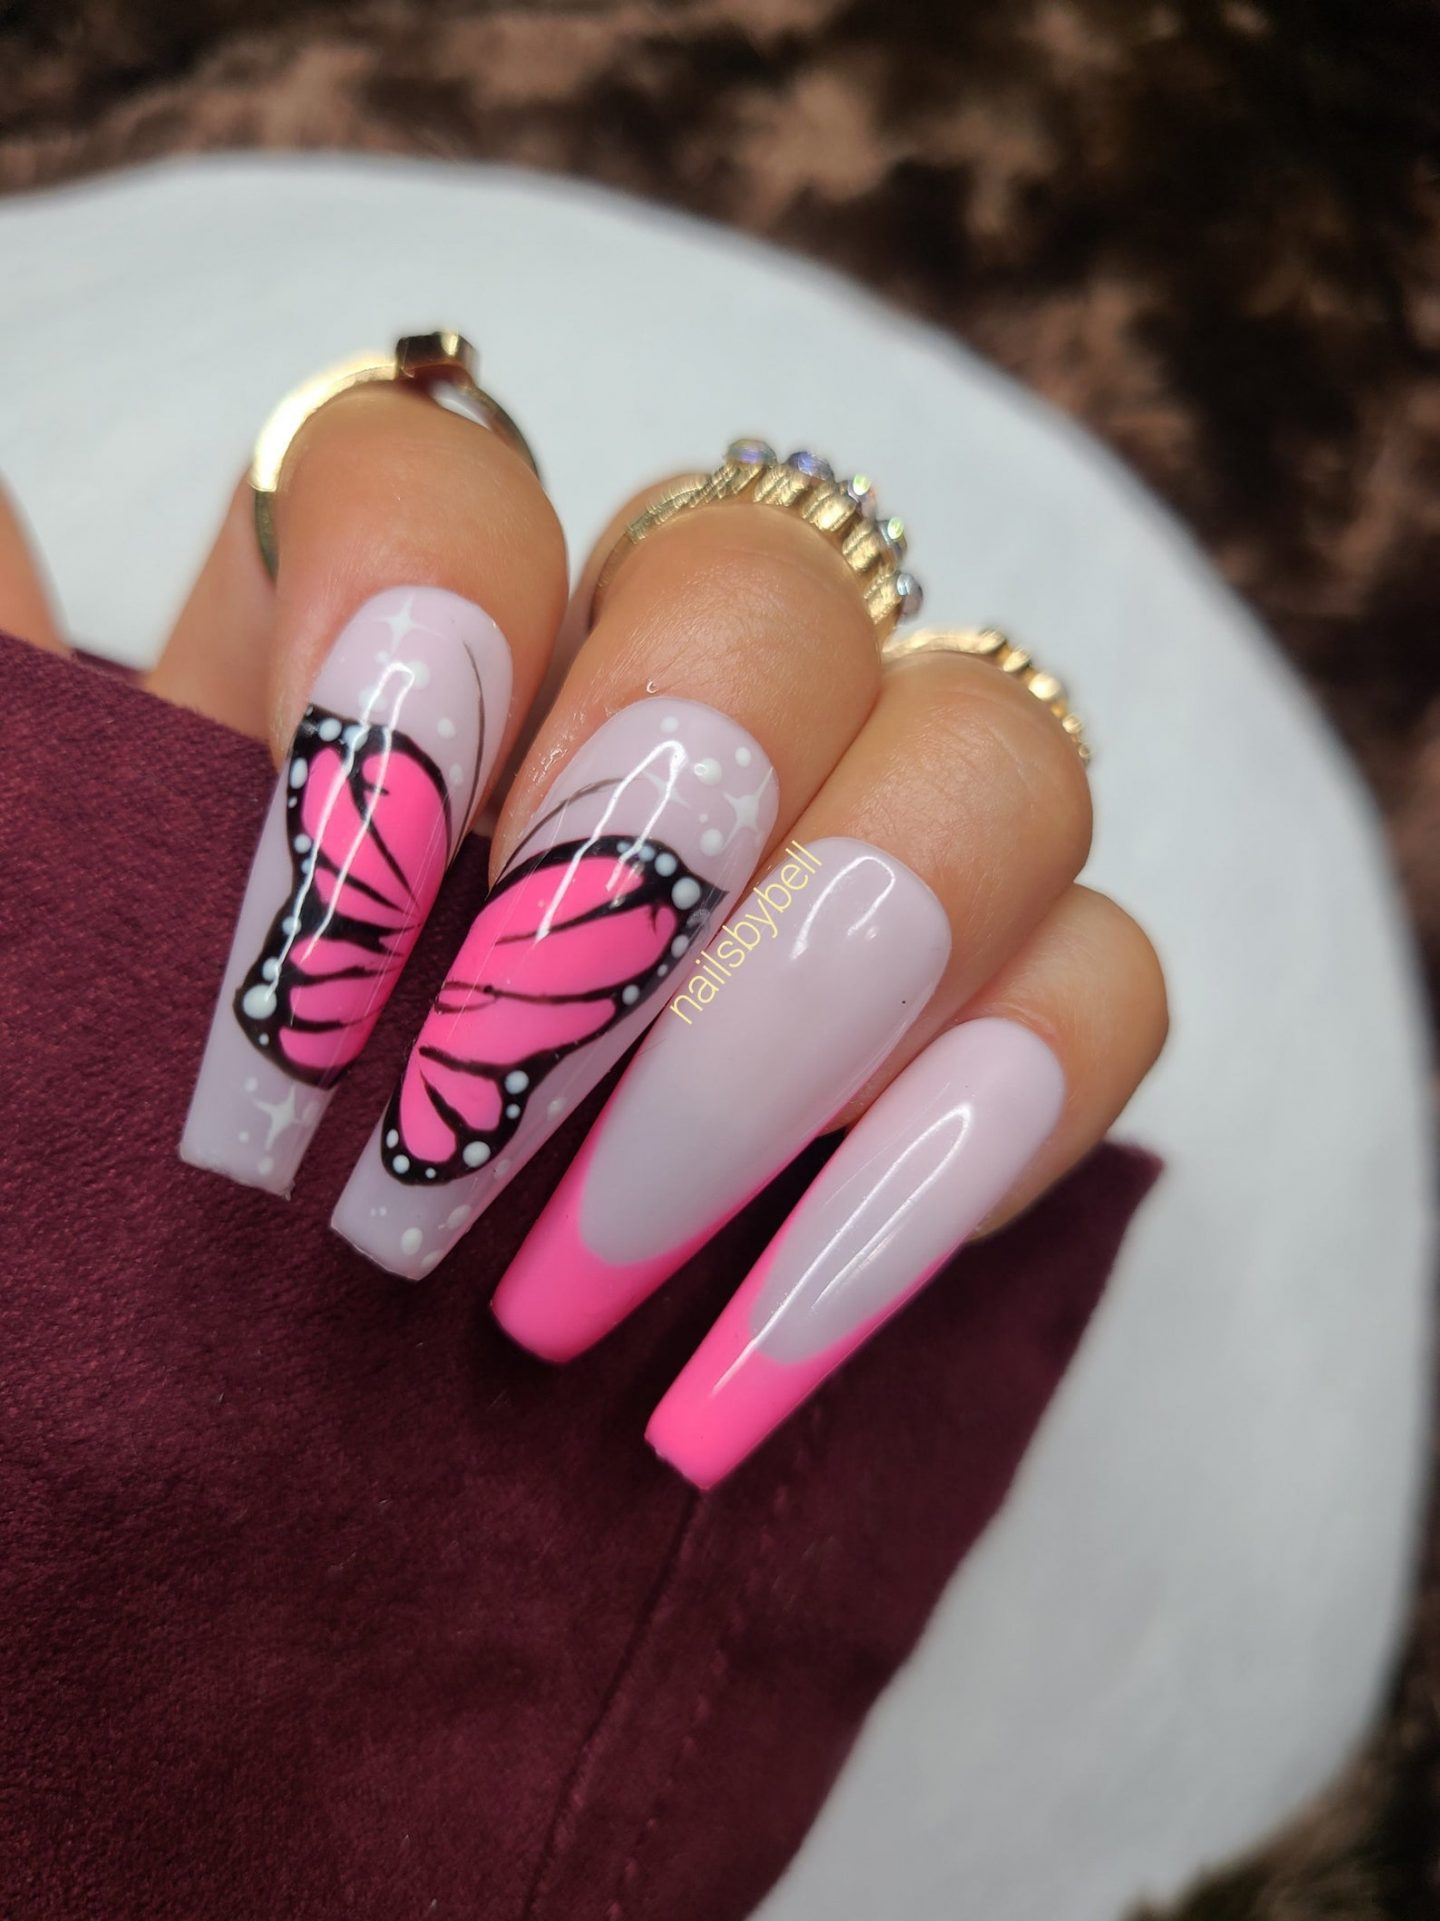 Hot pink French tip nails with butterfly nail art